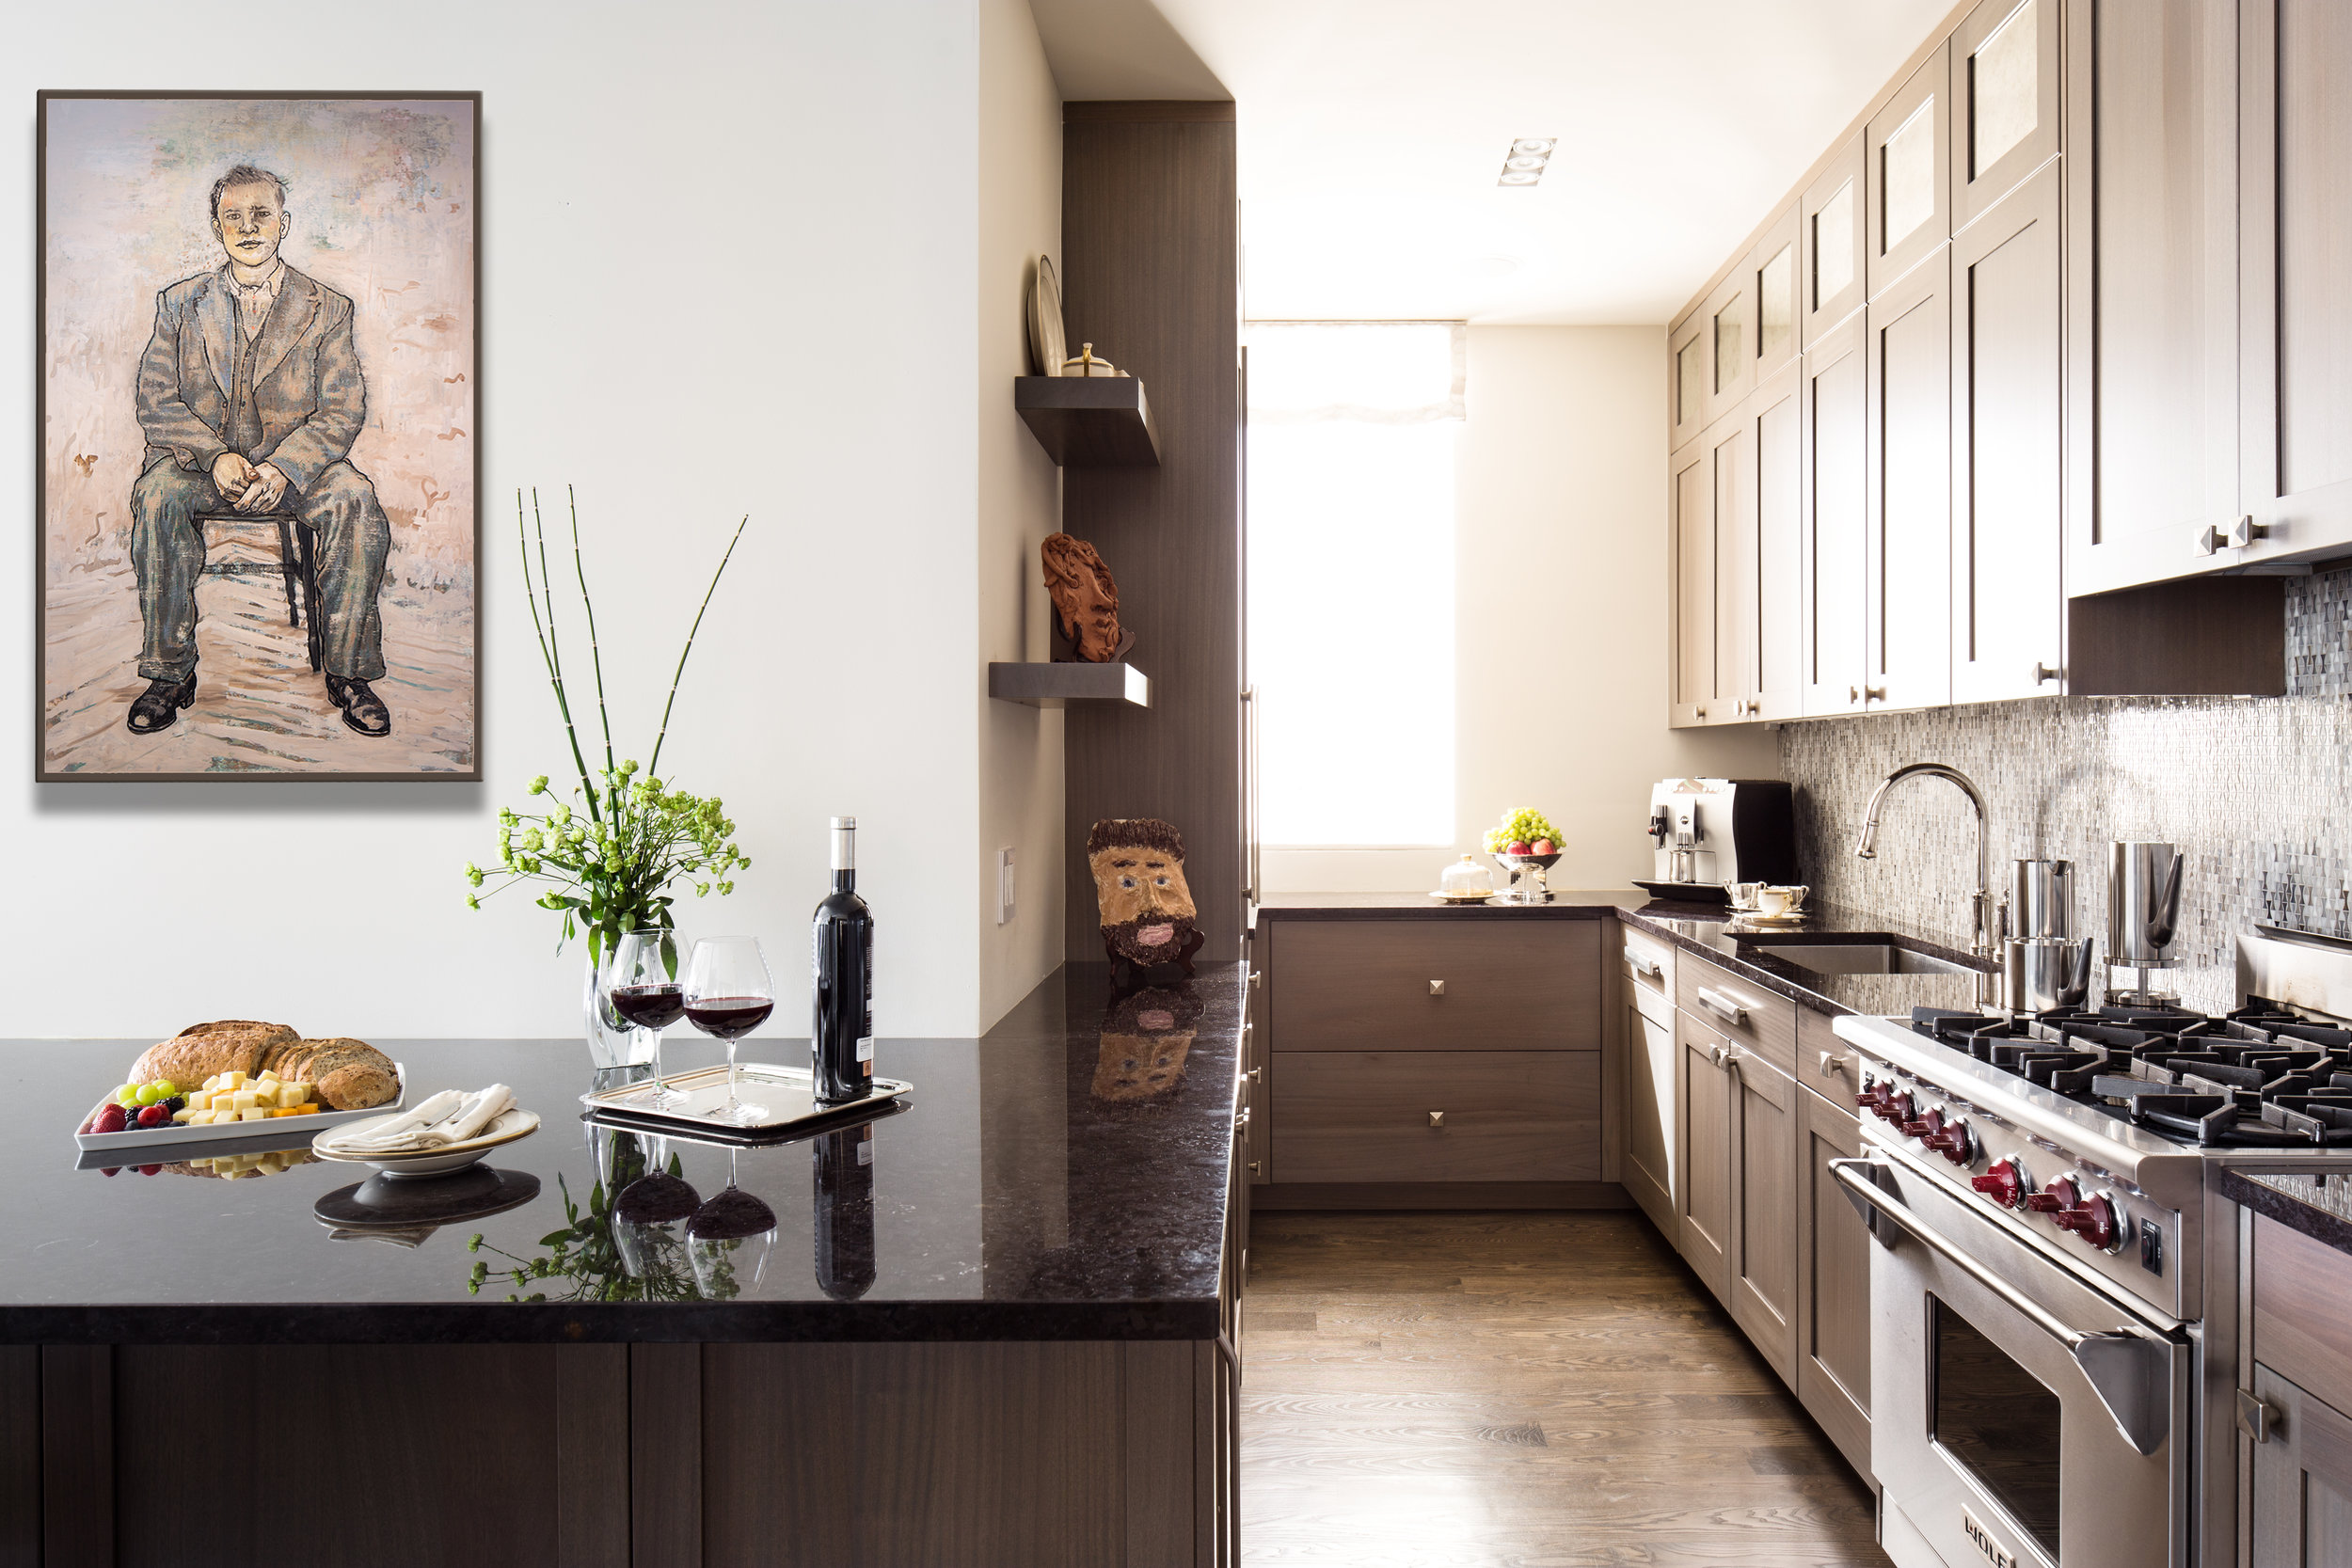 Interiors Photography - Kitchen Area